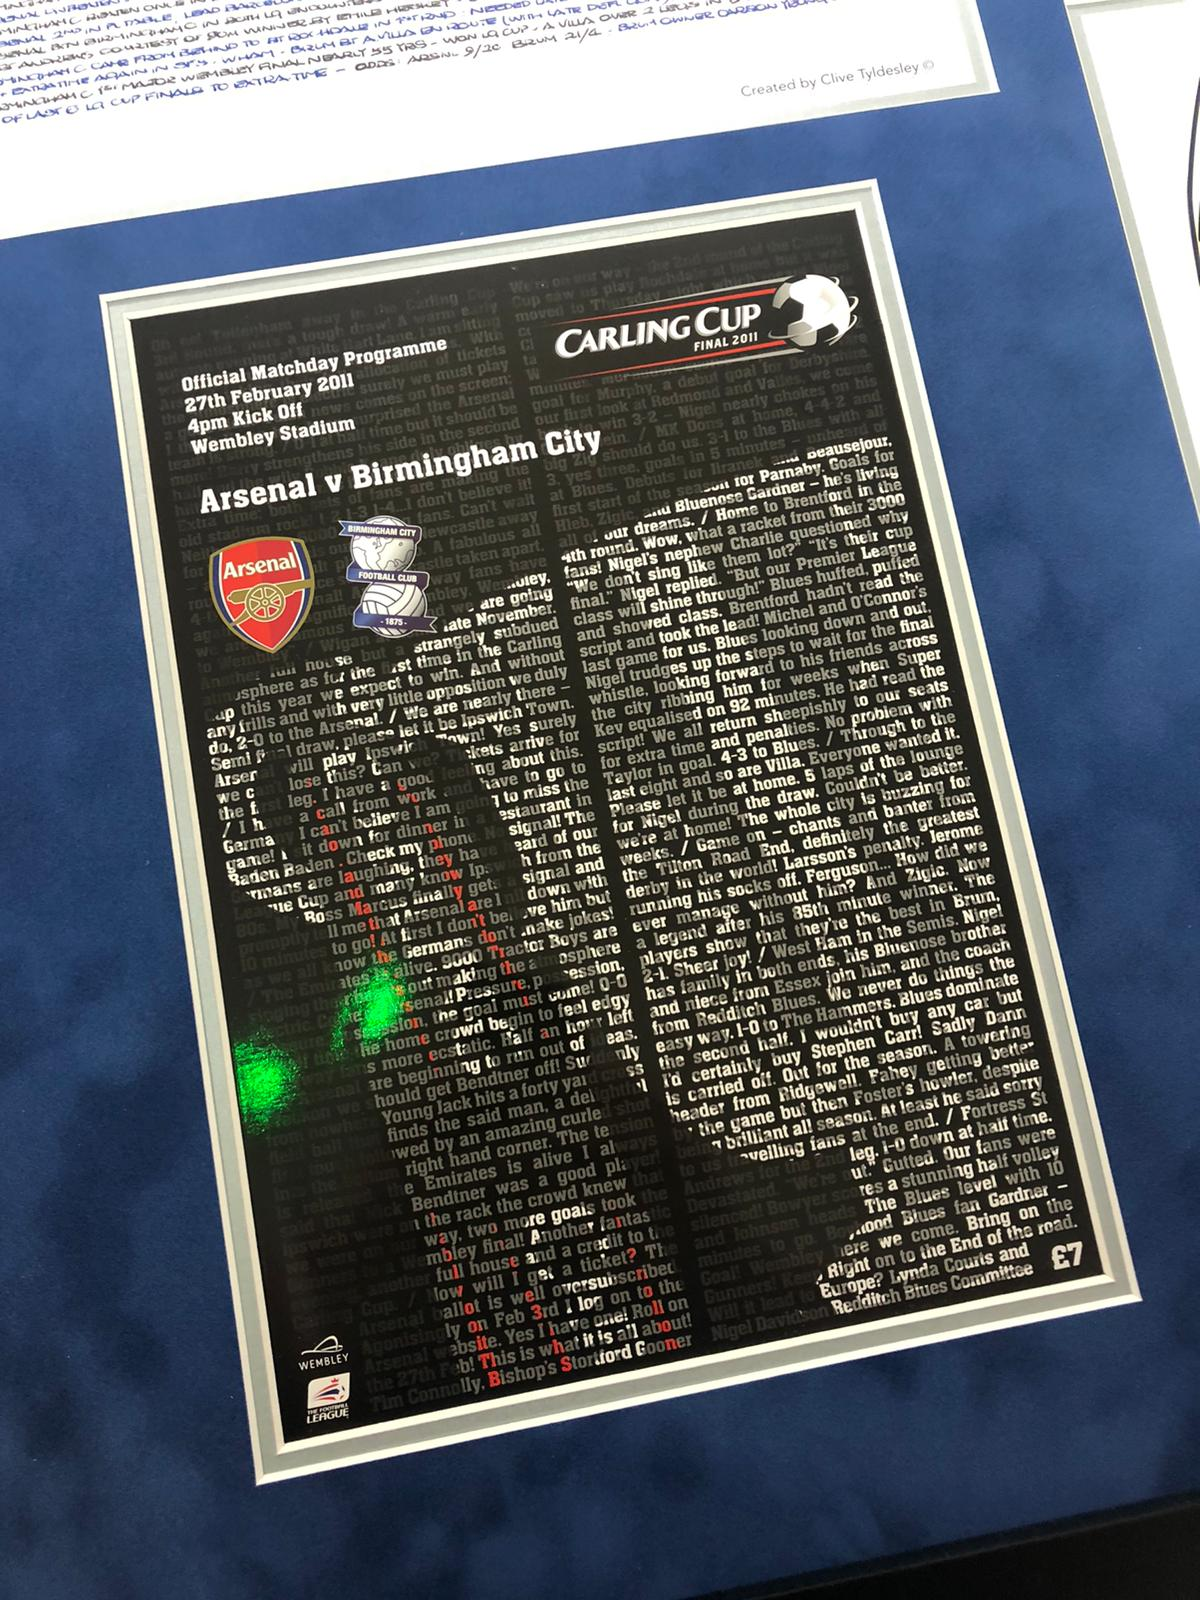 Carling Cup Frame - Signed by the Squad, Match Programme and Clive Tyldsleys's pre match notes